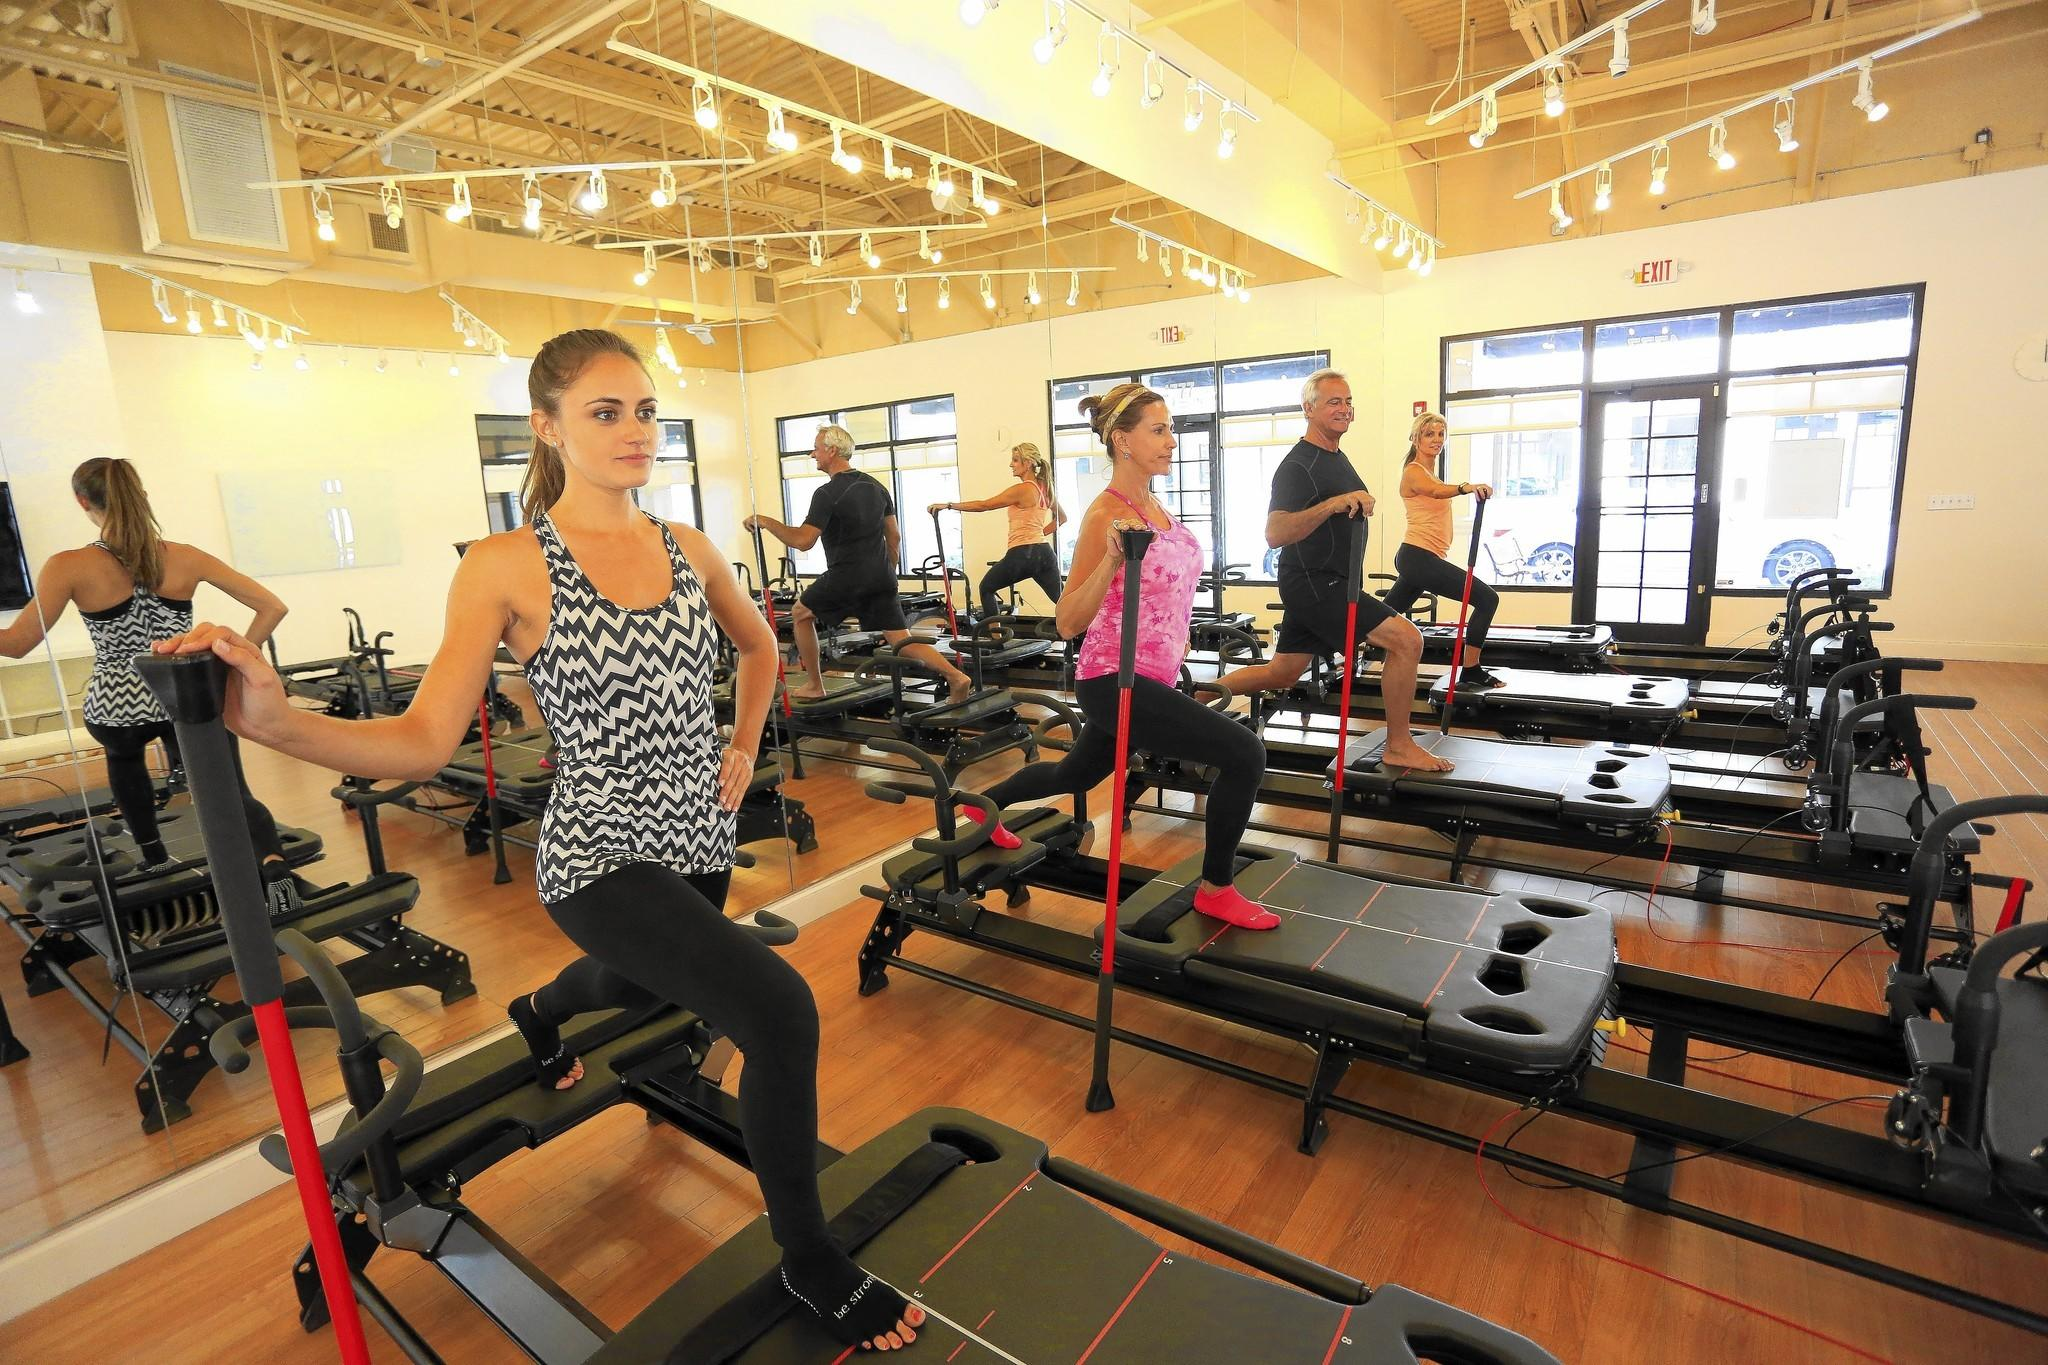 Core Evolution owner Marina Perrone leads a Lagree pilates class at her Palm Beach Gardens facility, using the MegaFormer machines.